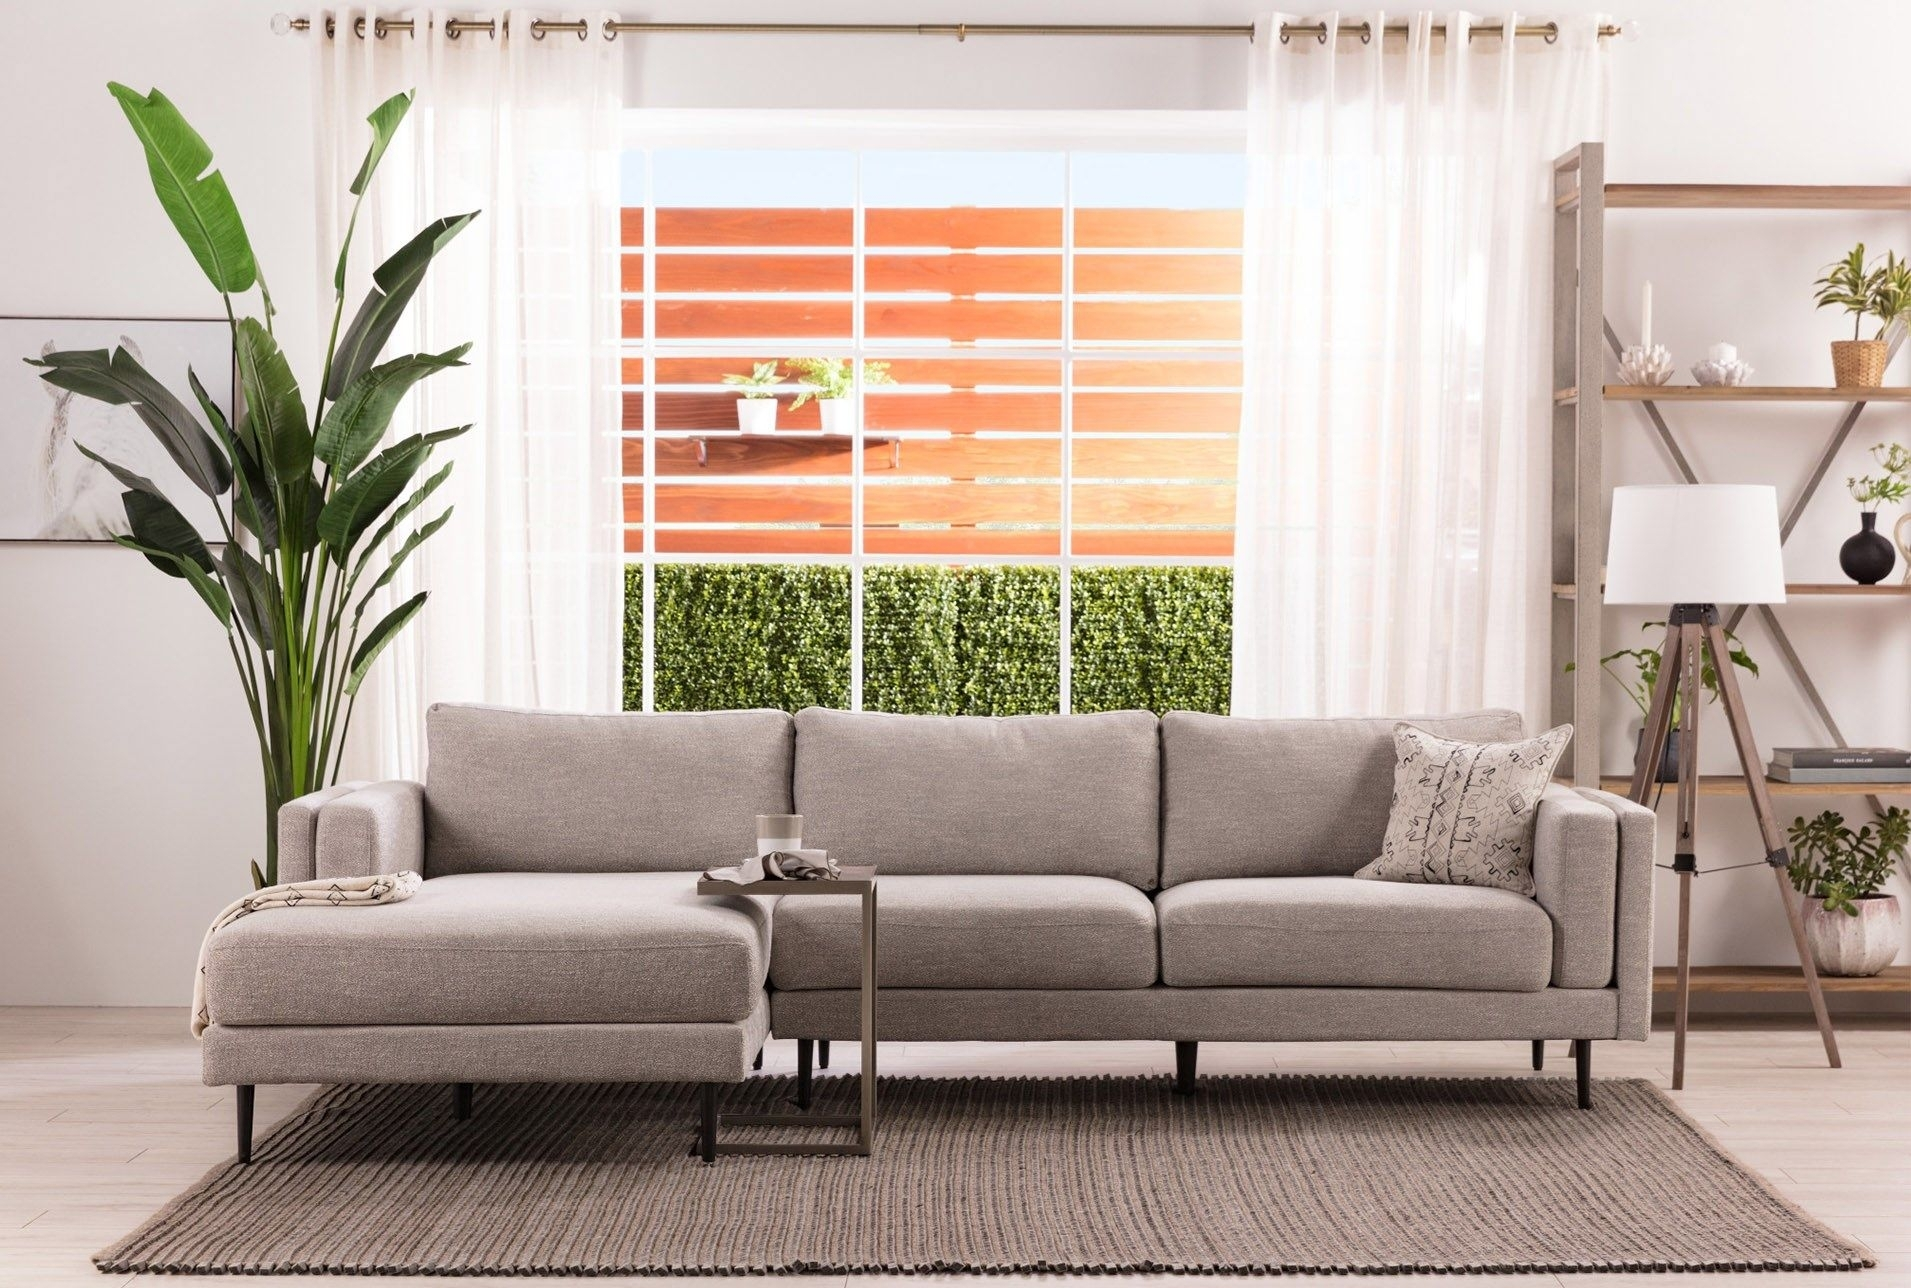 Aquarius Light Grey 2 Piece Sectional W/laf Chaise | Pinterest intended for Aquarius Dark Grey 2 Piece Sectionals With Laf Chaise (Image 9 of 30)